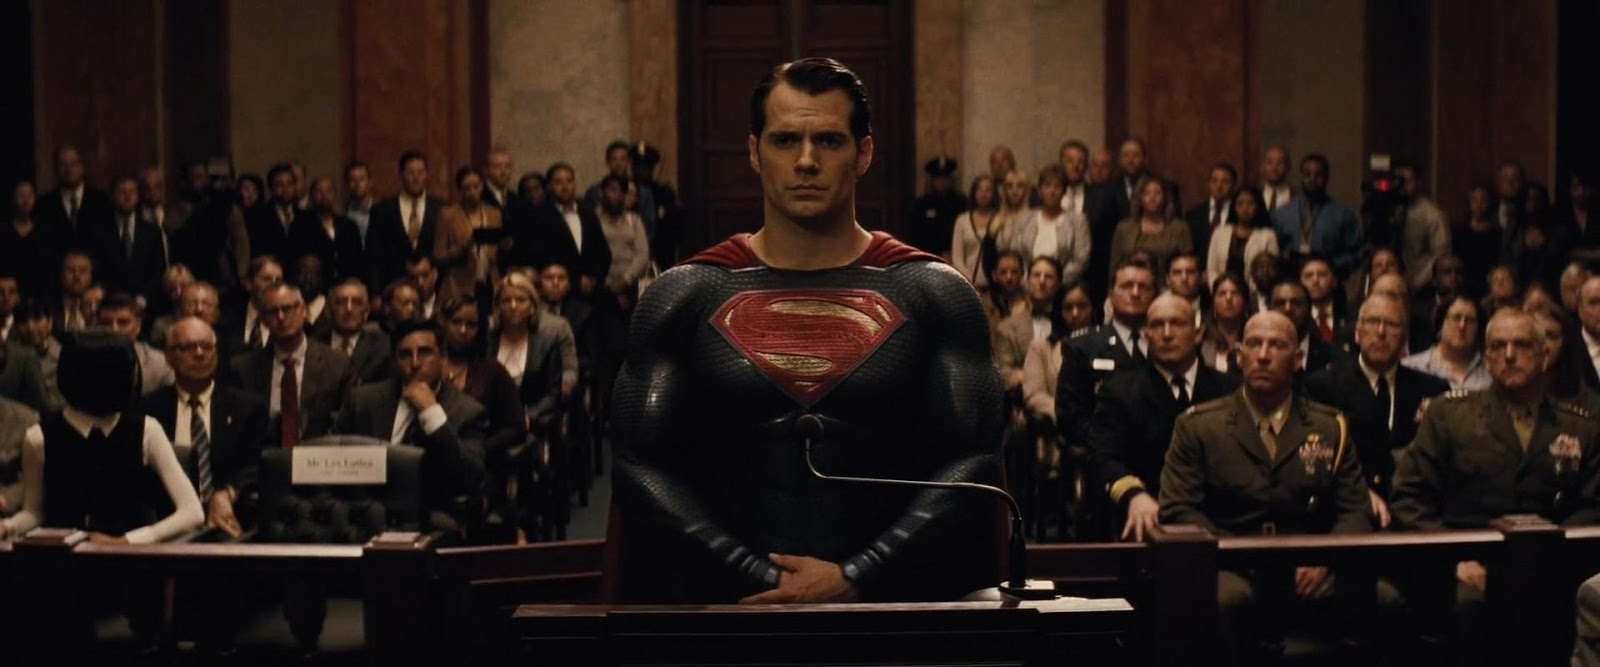 Batman v Superman: Dawn of Justice (2016) 3